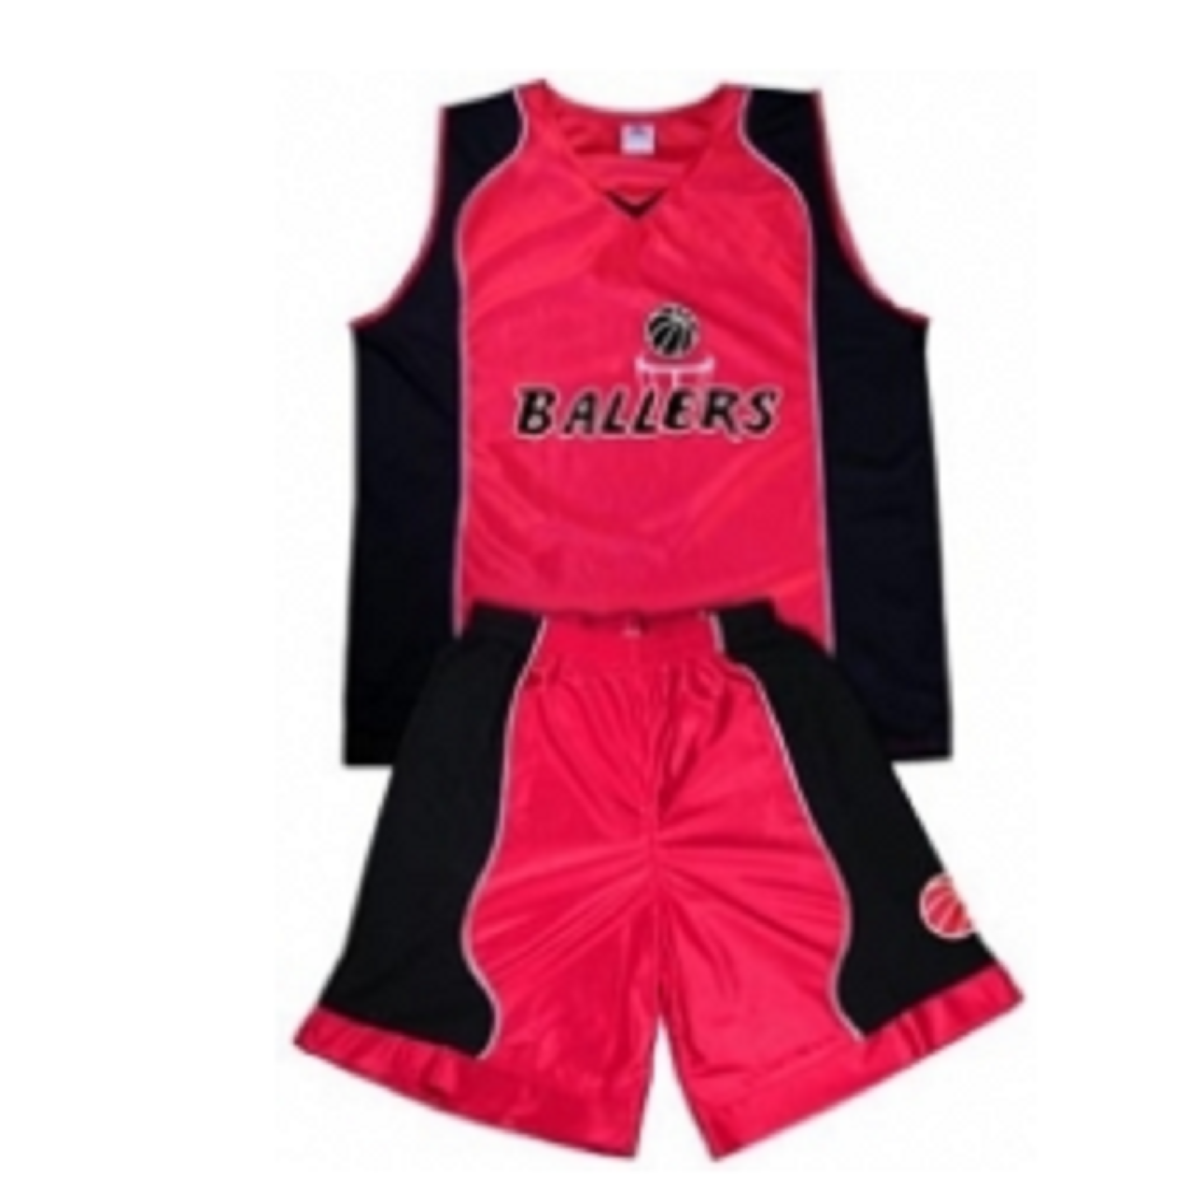 Basket Ball Uniforms Red & Black Model No TSI­5408